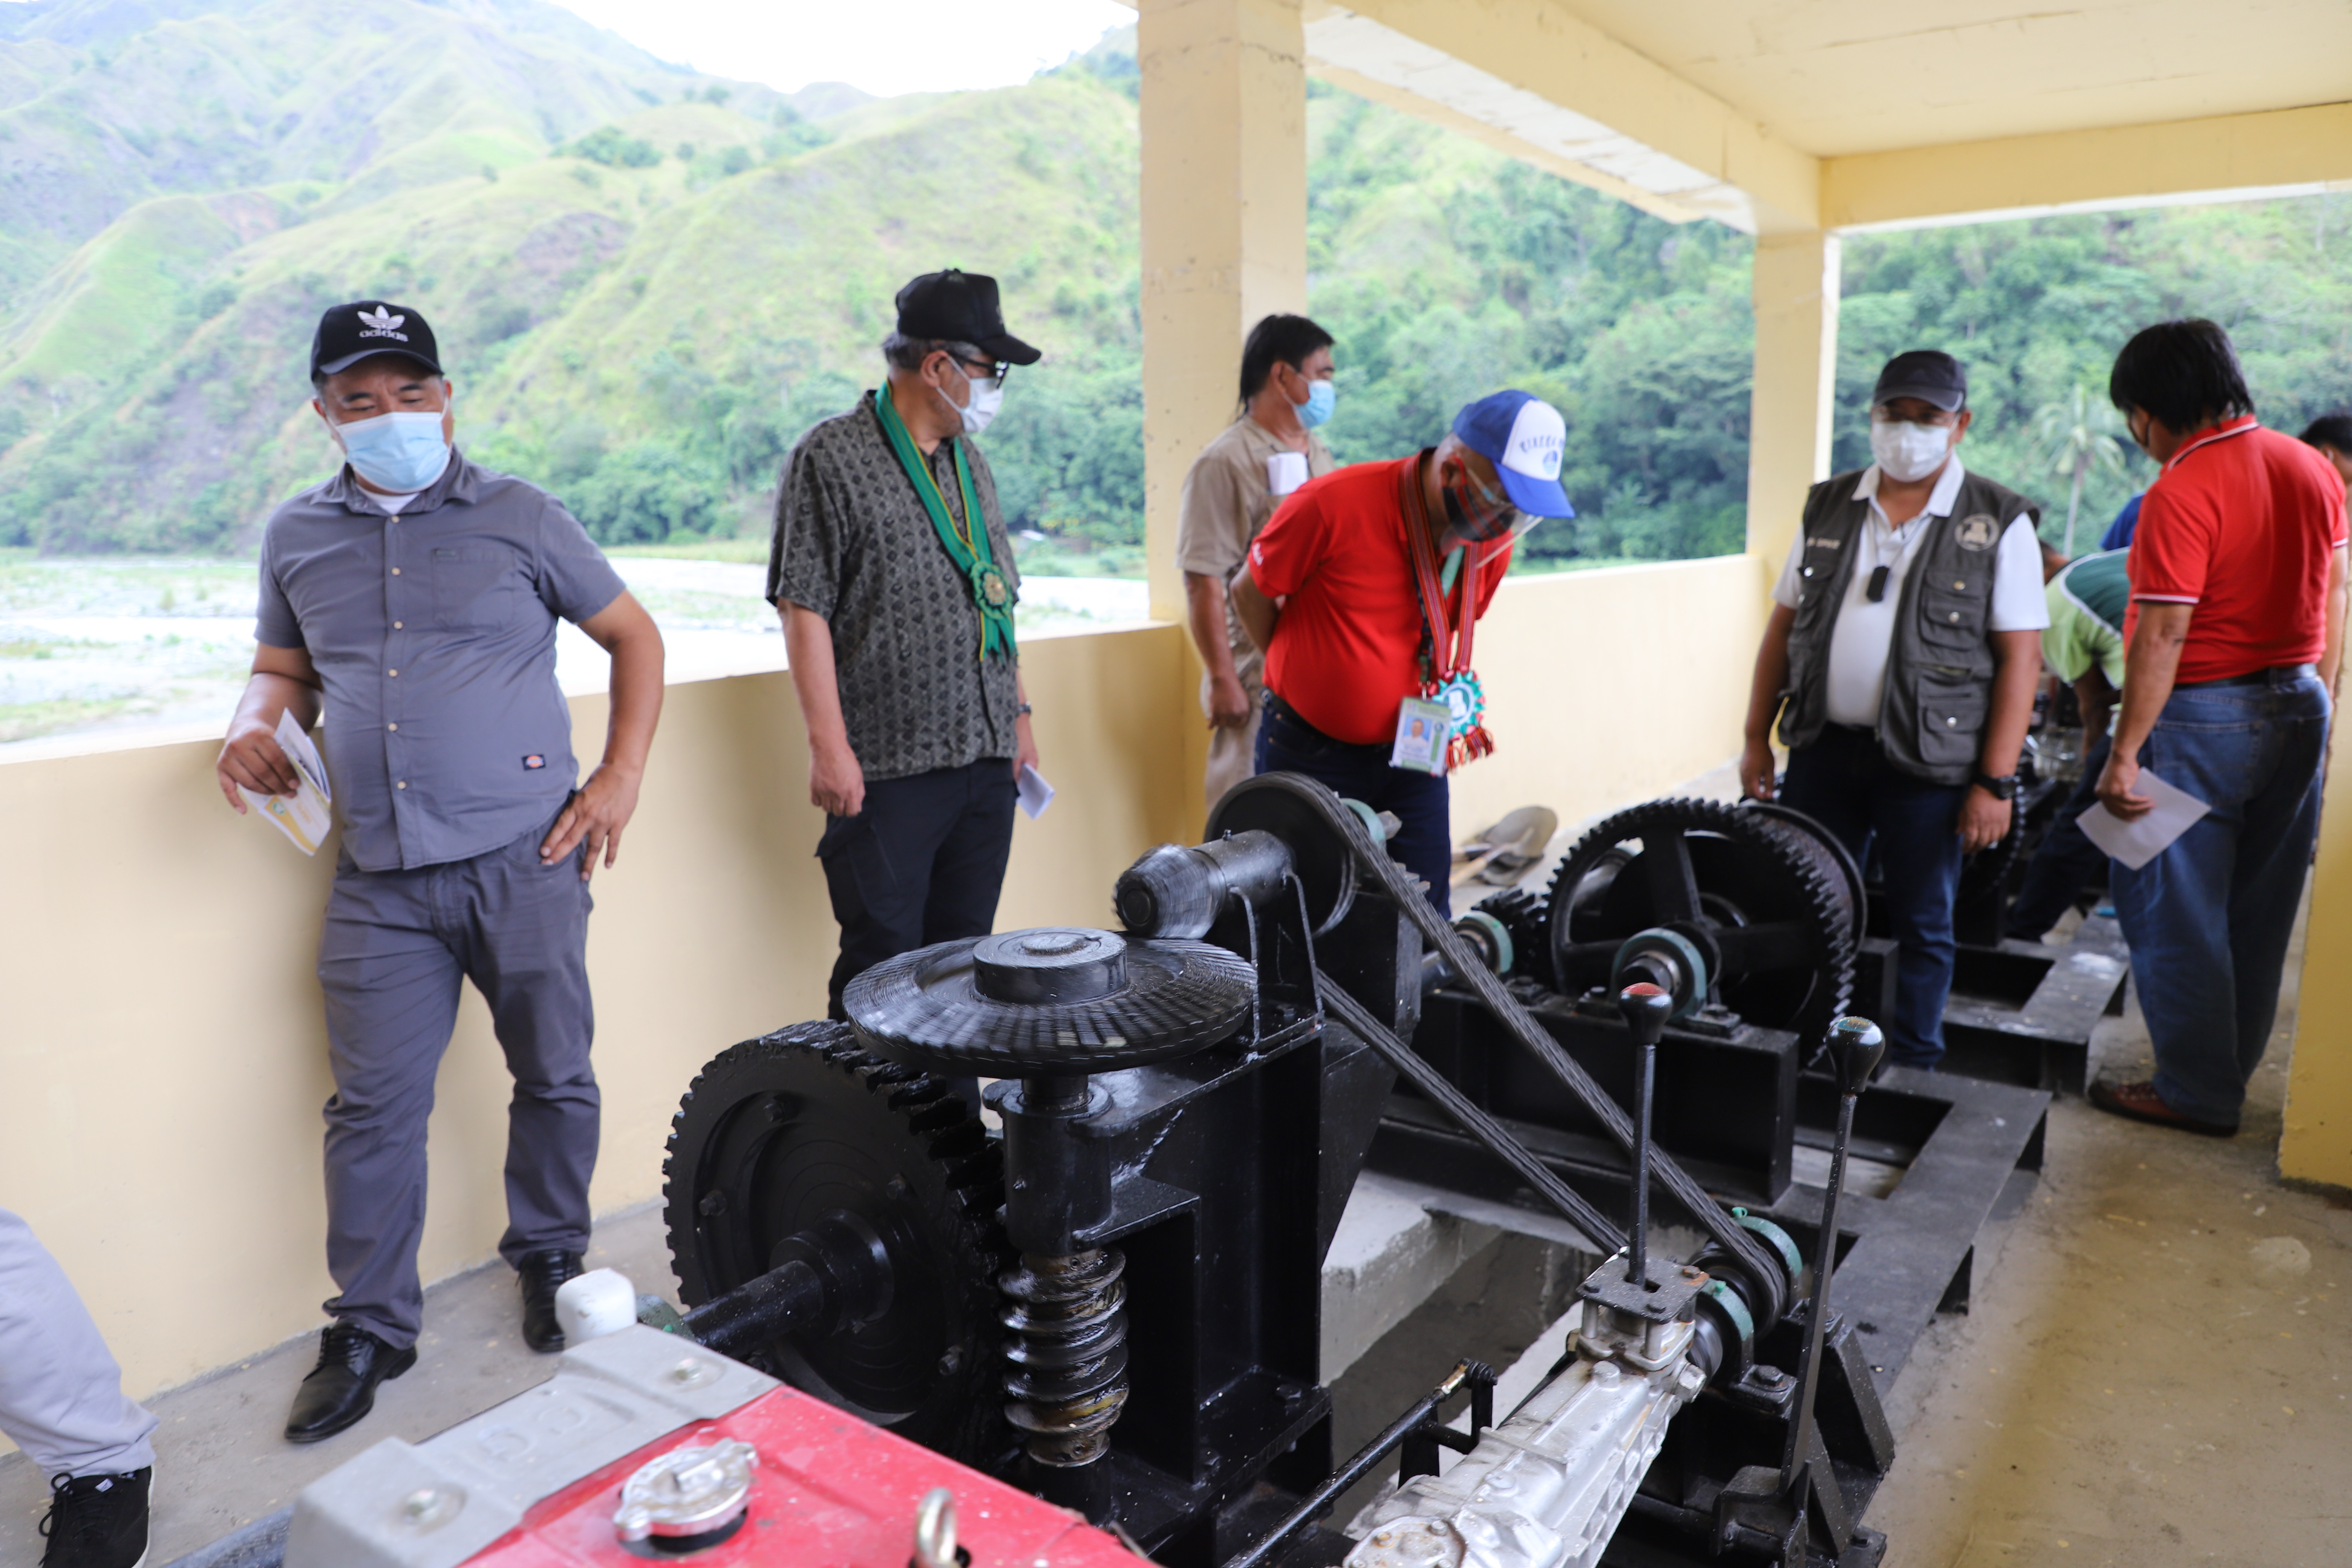 NIA-CAR Manager Benito Espique, Jr. show to the Ifugao local officials the lifting mechanisms of the steel gates of the Hapid Diversion Dam which are used to regulate the irrigated water being diverted towards the main canal.